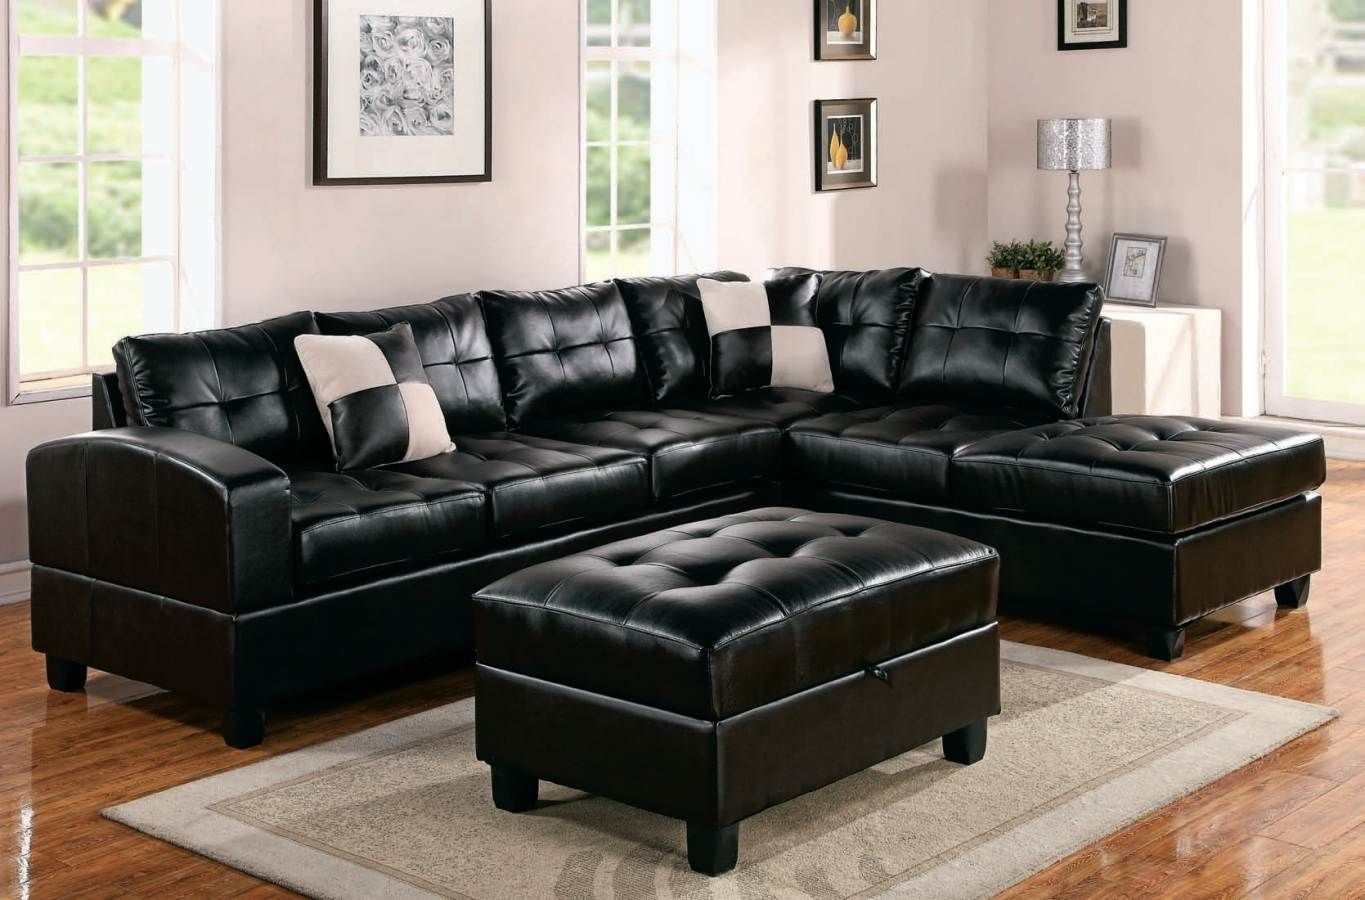 Oversized Black Leather Sectional Sofa With Tables | Family Room for Black Leather Sectionals With Ottoman (Image 11 of 15)